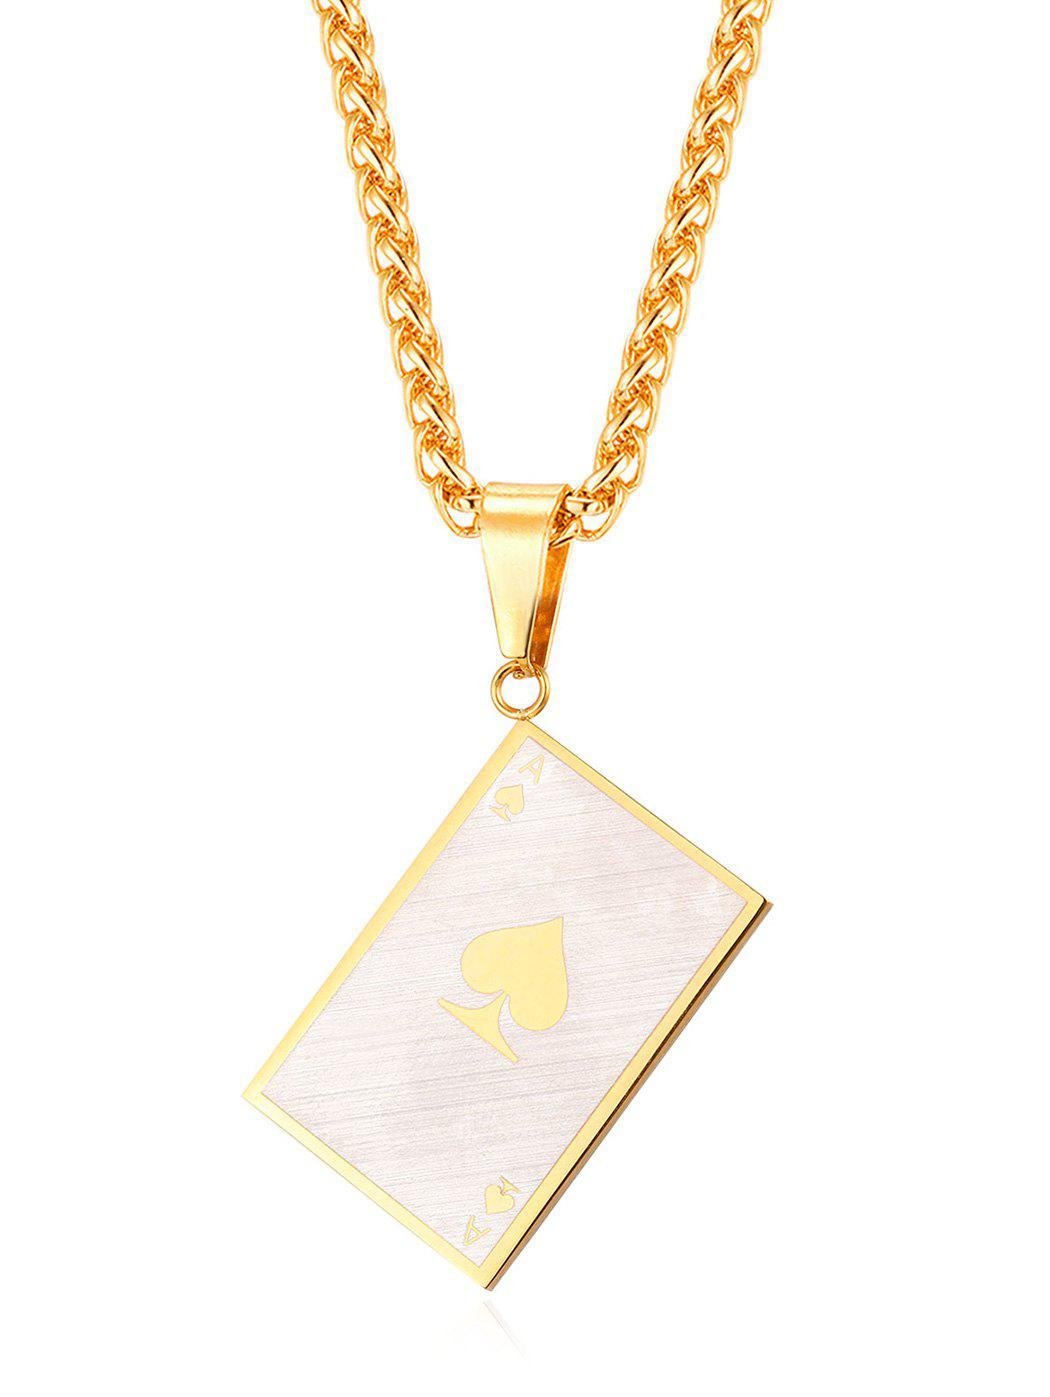 Fancy Poker Ace Decorative Pendant Chain Necklace